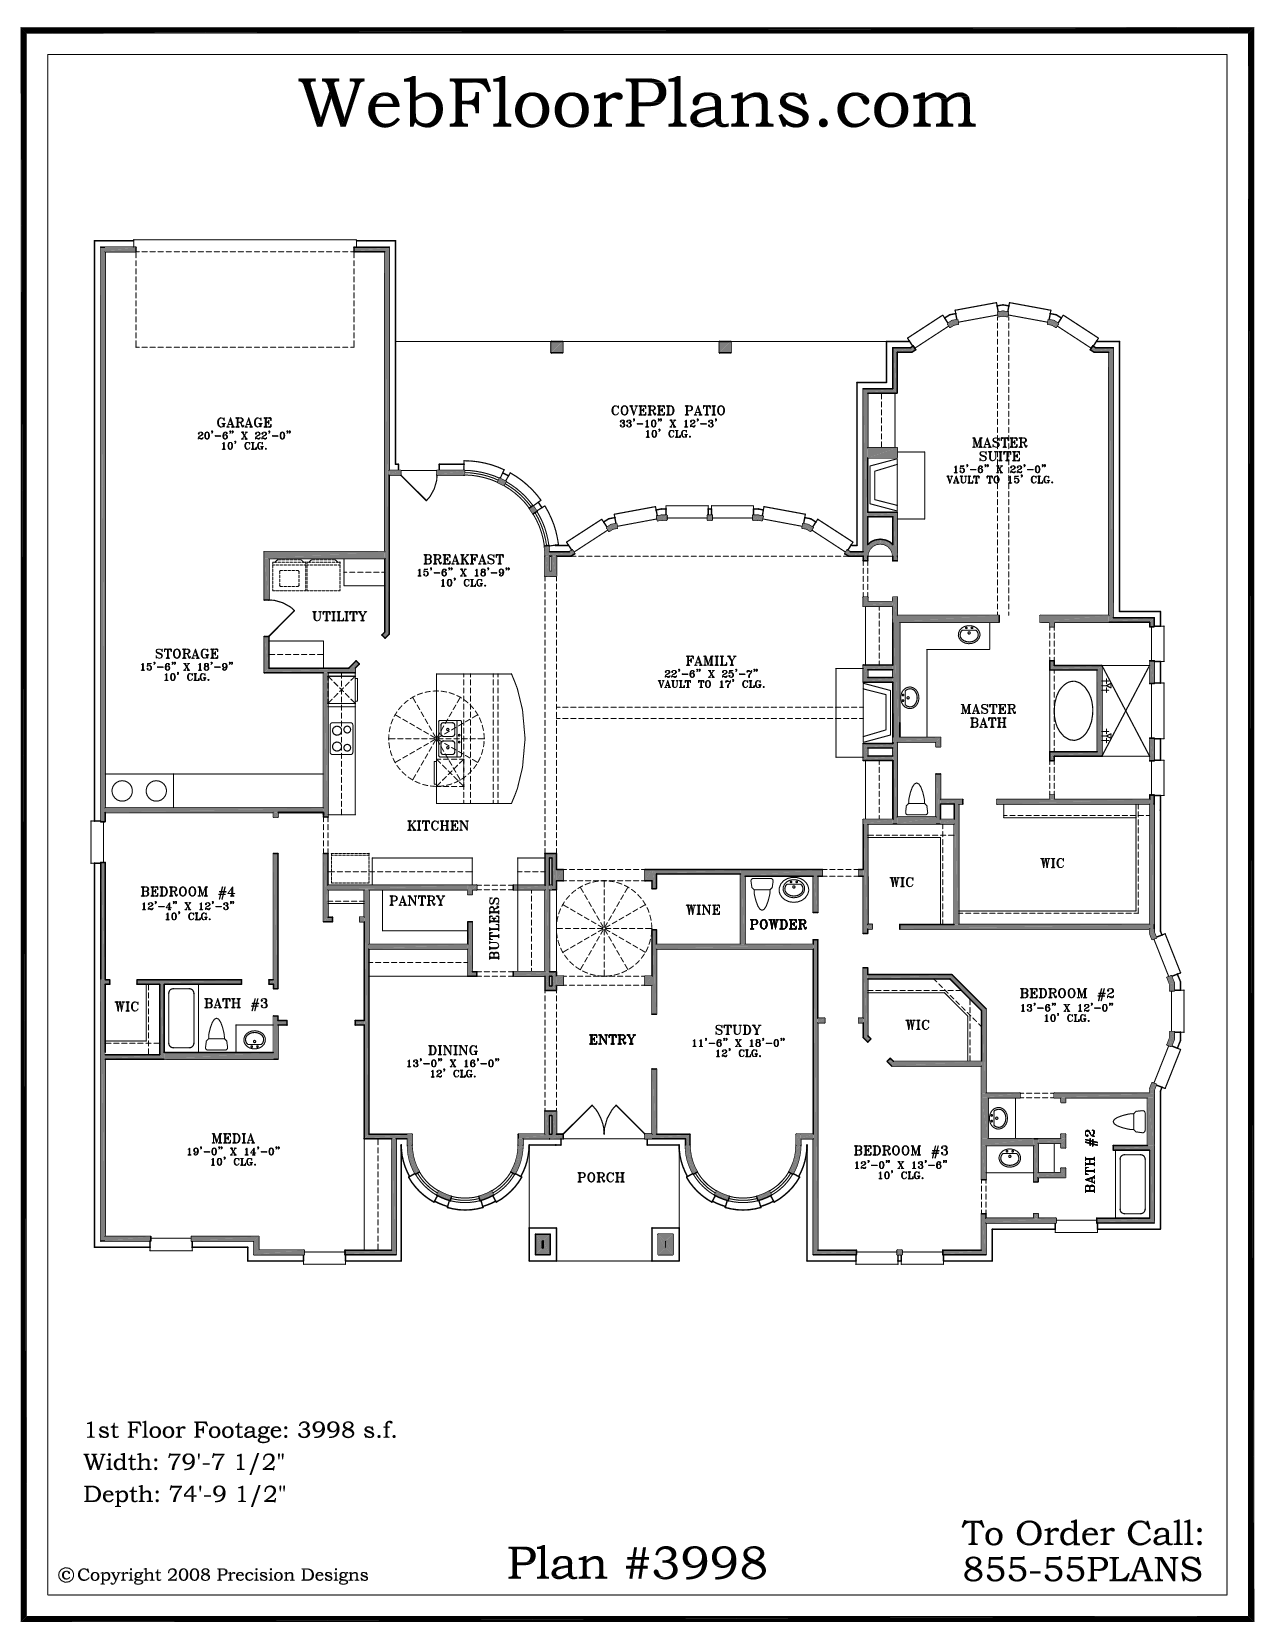 House Plans For One Story Homes Nice Single Story Home Plans 1 One Story House Plans  European